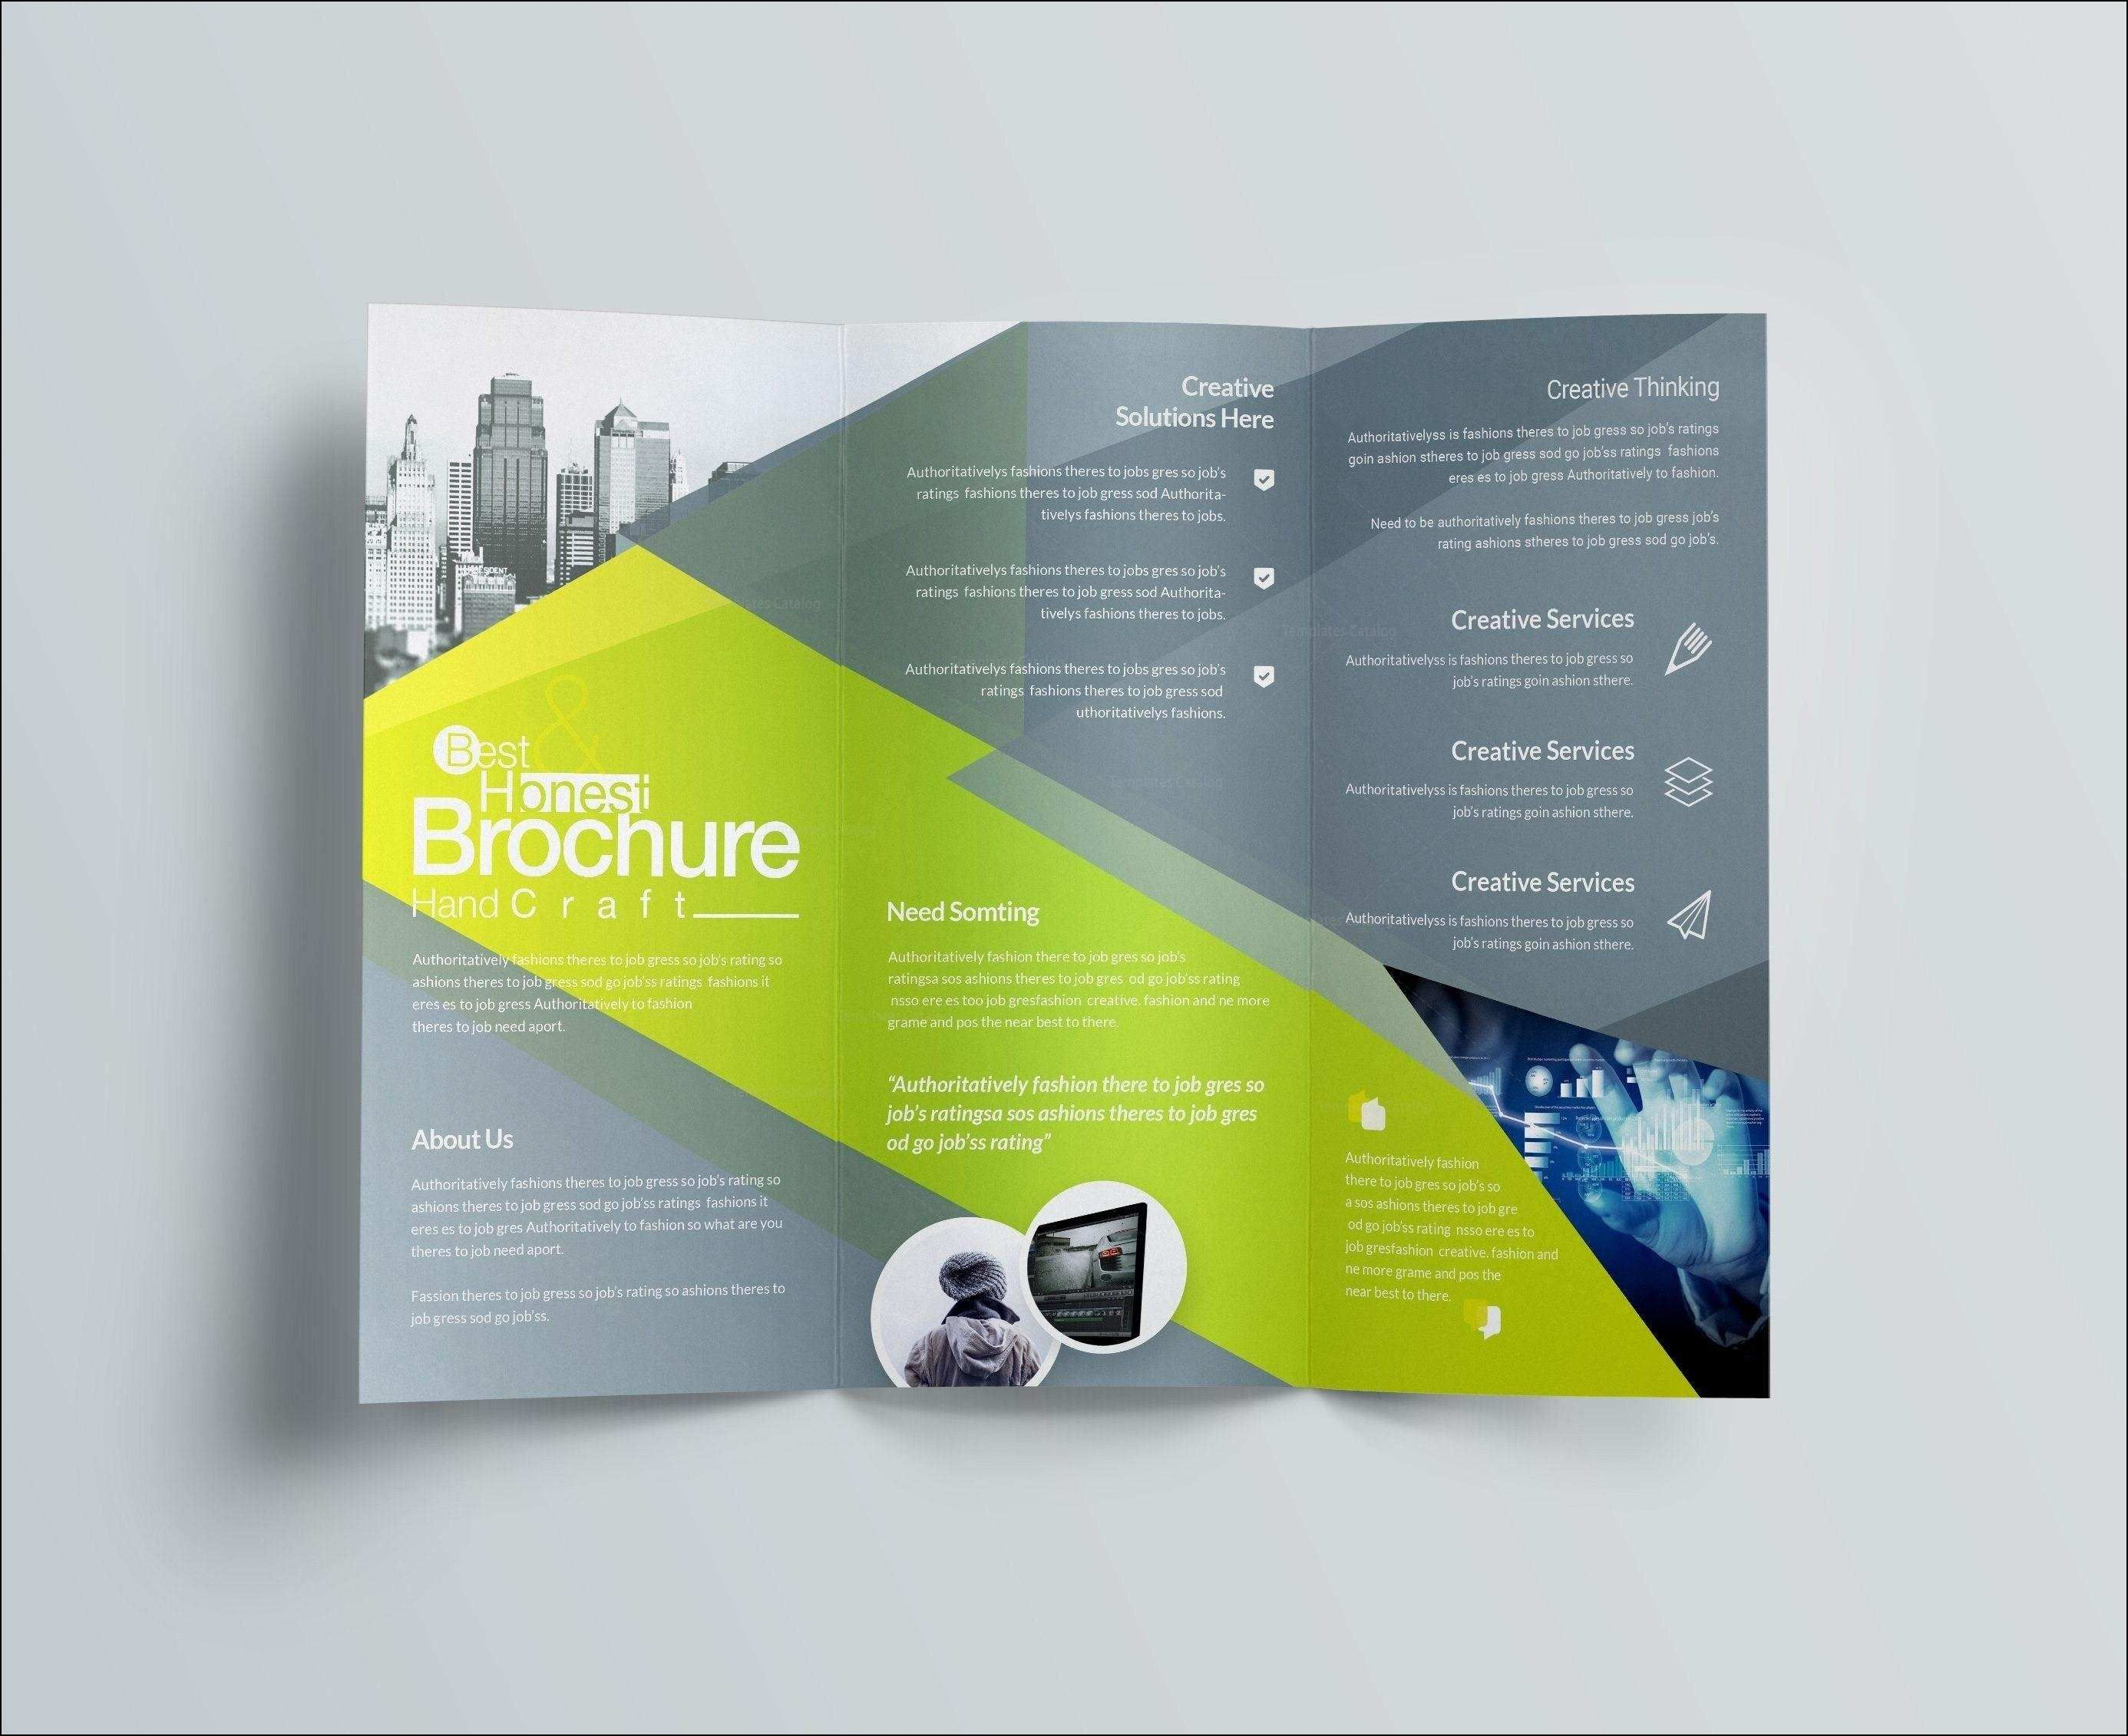 002 Ms Publisher Brochure Template Singular Ideas Templates With Regard To Free Template For Brochure Microsoft Office